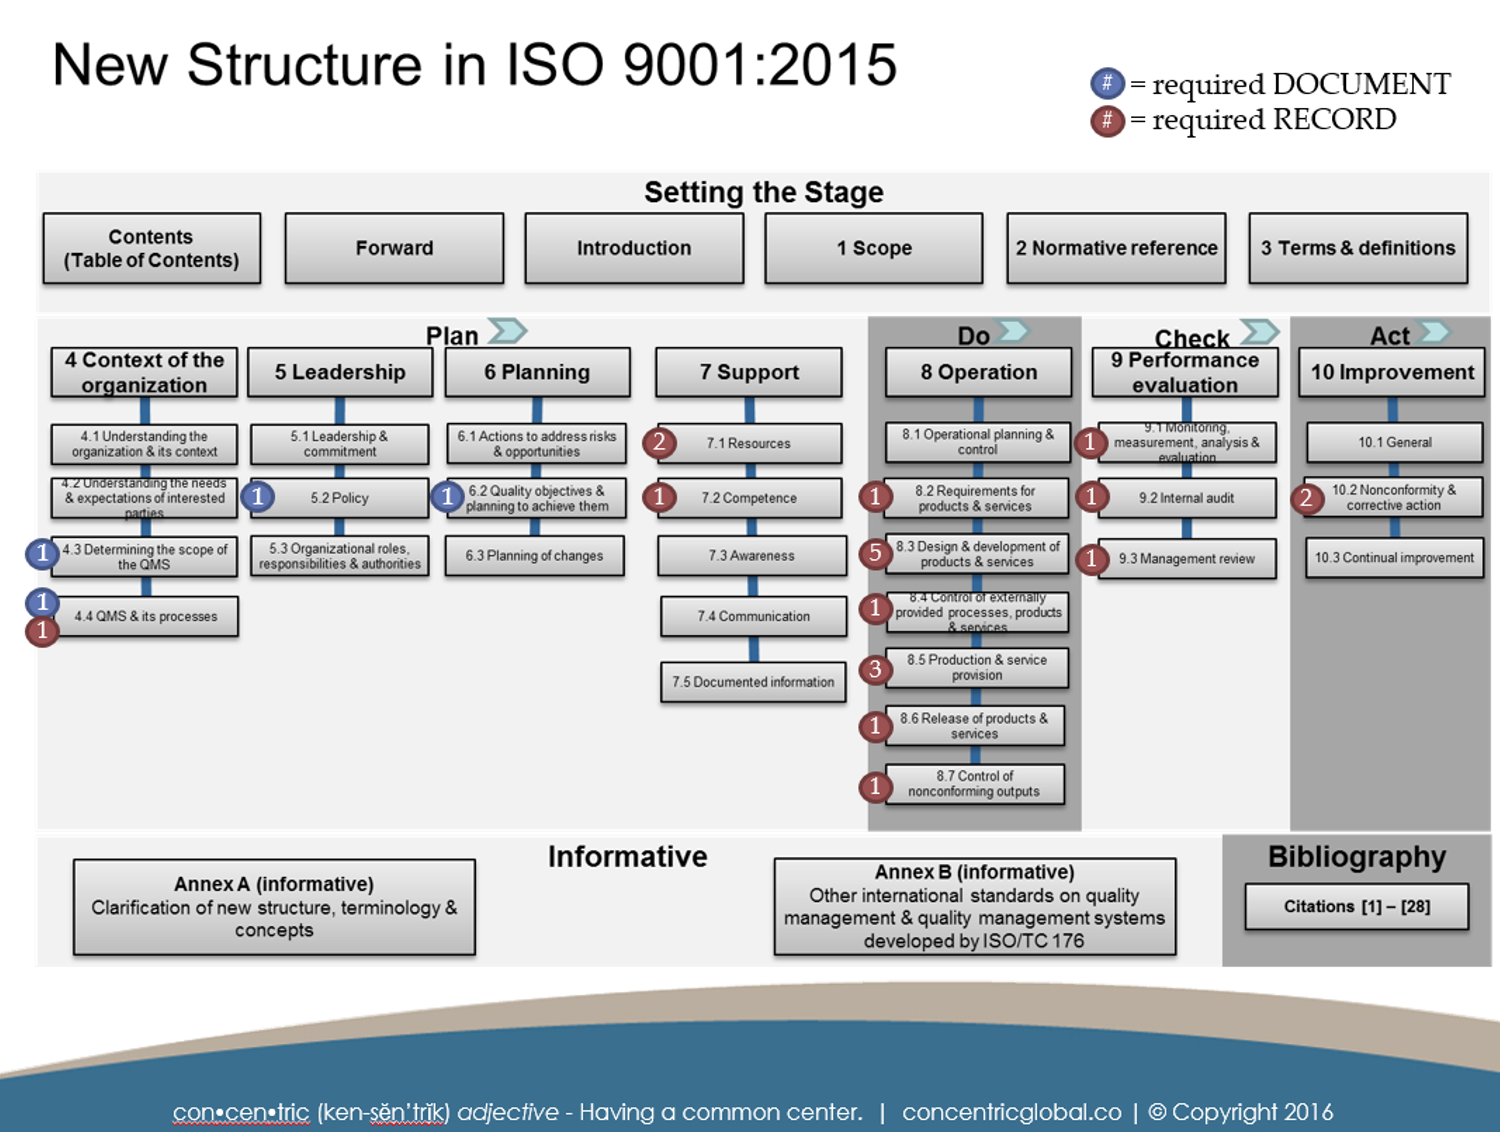 Iso 9001 2015 documentation requirements concentric global for Iso 9001 templates free download